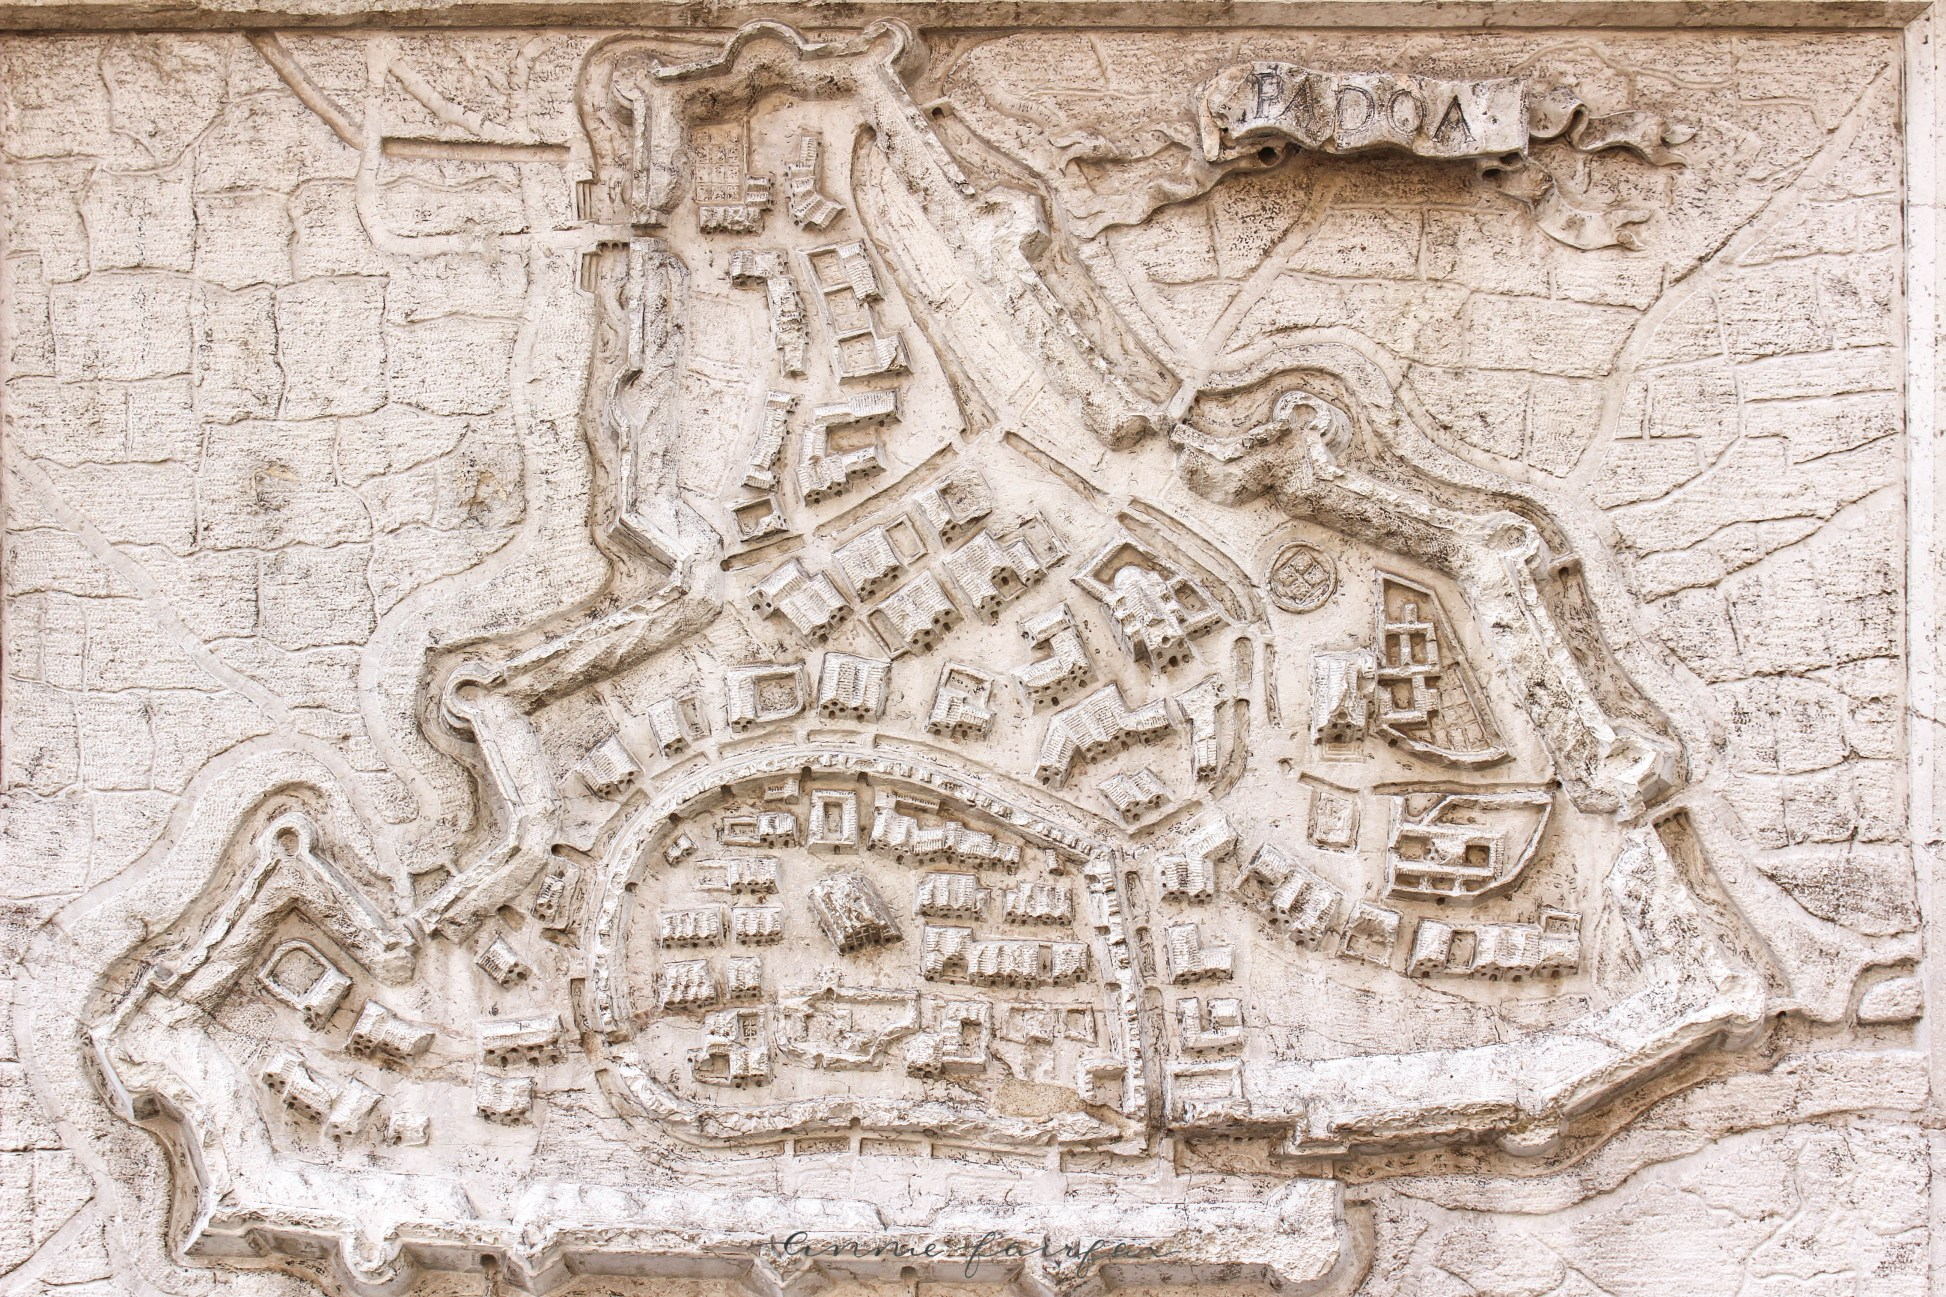 Map Carved in Stone in Venice Italy Canal Italian Food Venezia Gondola Gondoliers Boats Nautical Preppy Architecture Windows Travel Guide to Venice What to Do Eat Stay in Venice